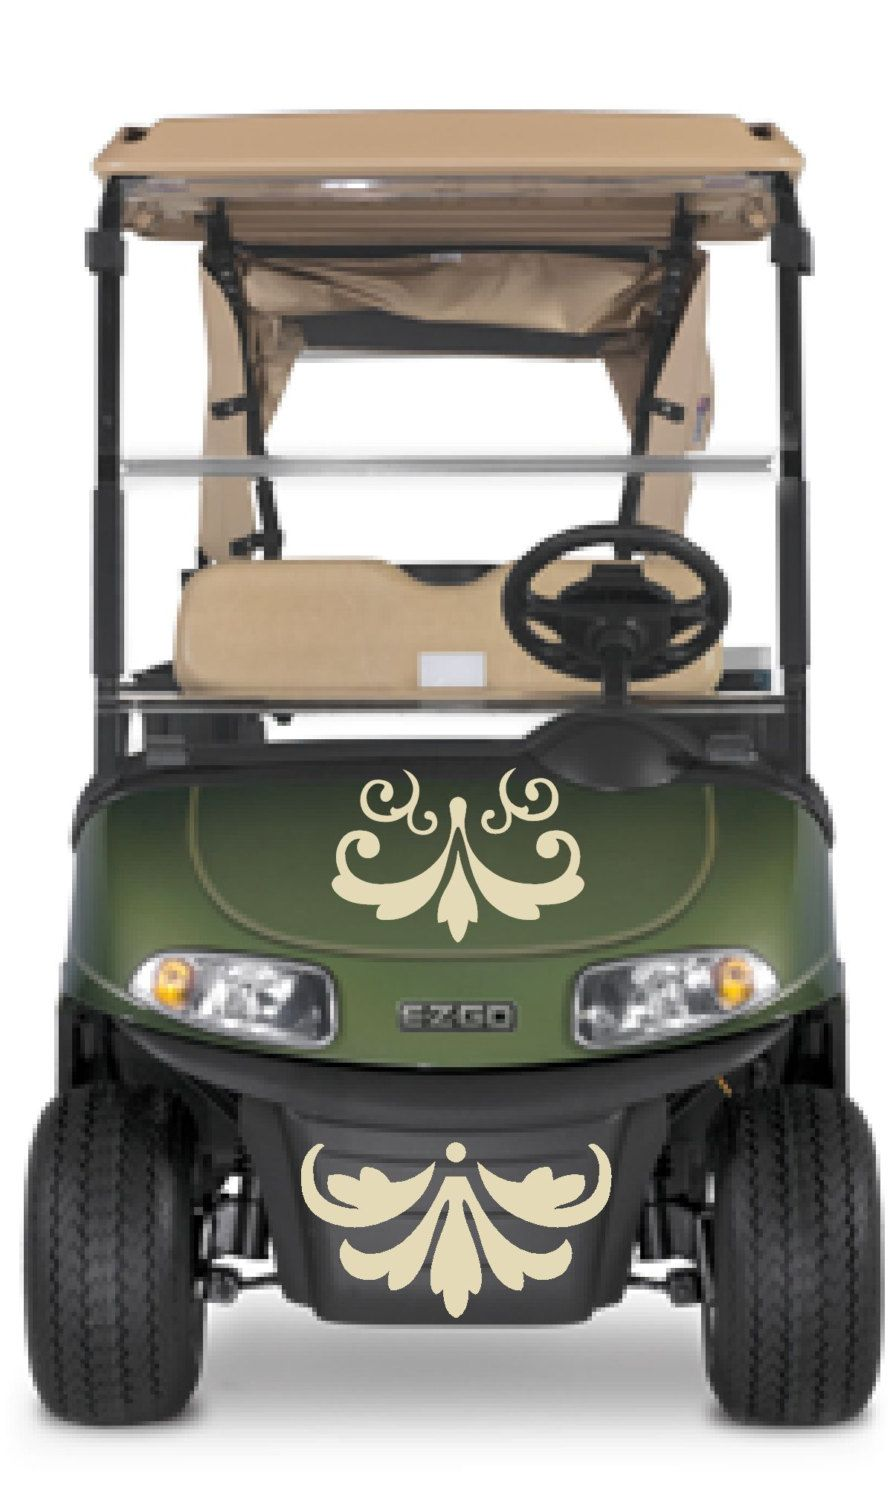 Gator Golf Cart Silhoette on